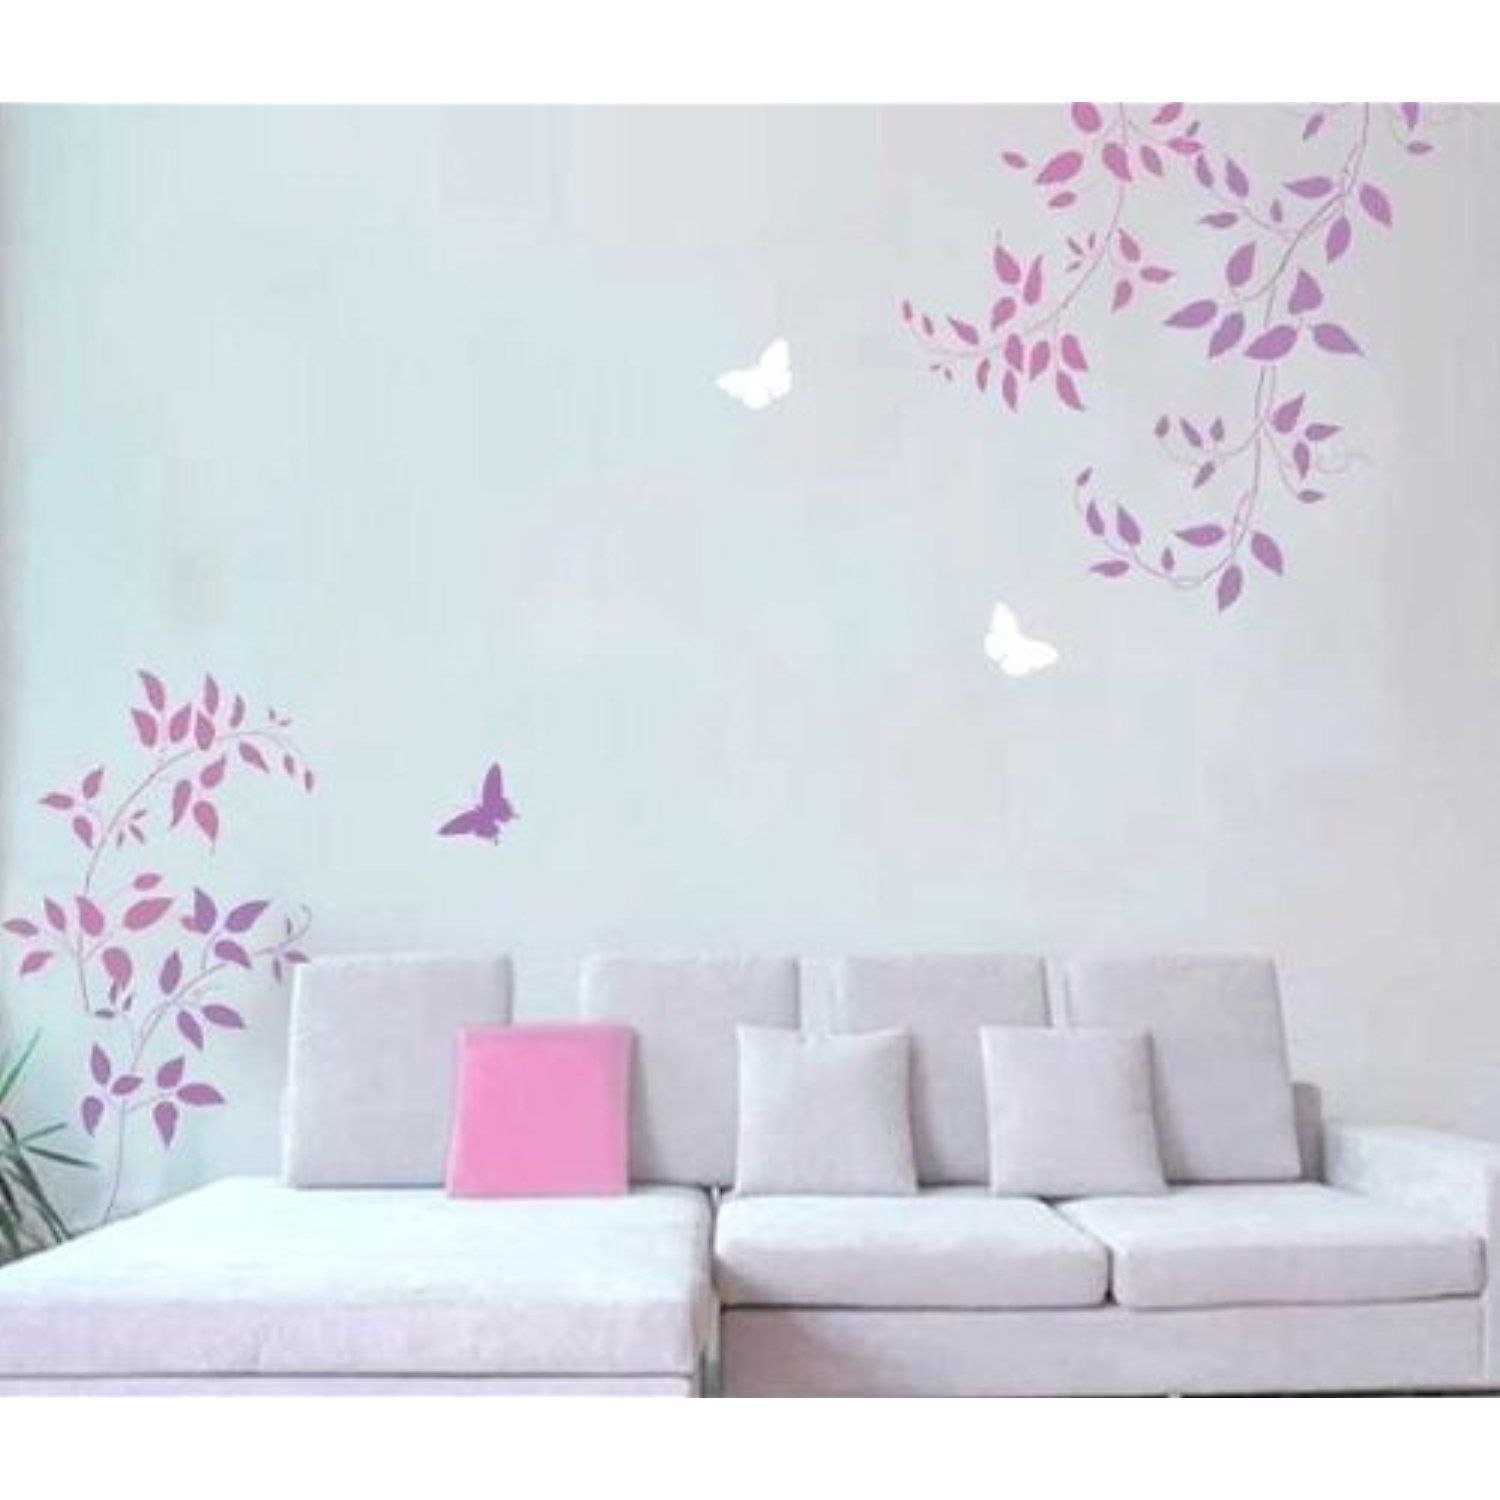 Wall stencils clematis vine 3pc kit easy wall decor with wall stencils clematis vine 3pc kit easy wall decor with stencils better than decals amipublicfo Images